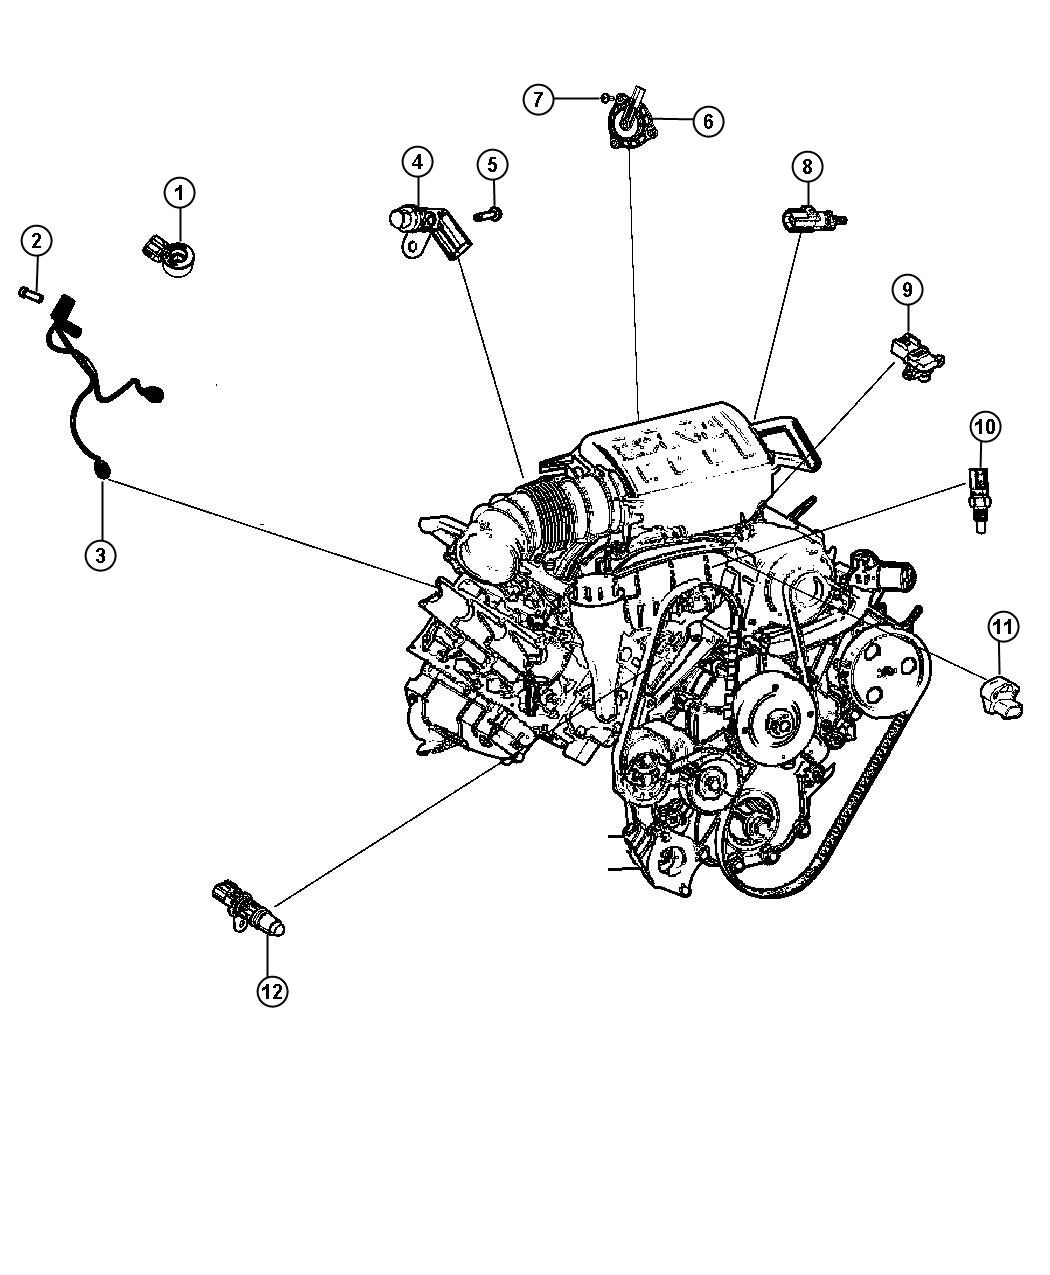 2007 dodge ram headlight wiring diagram images jeep wrangler factory location jeep engine image for user